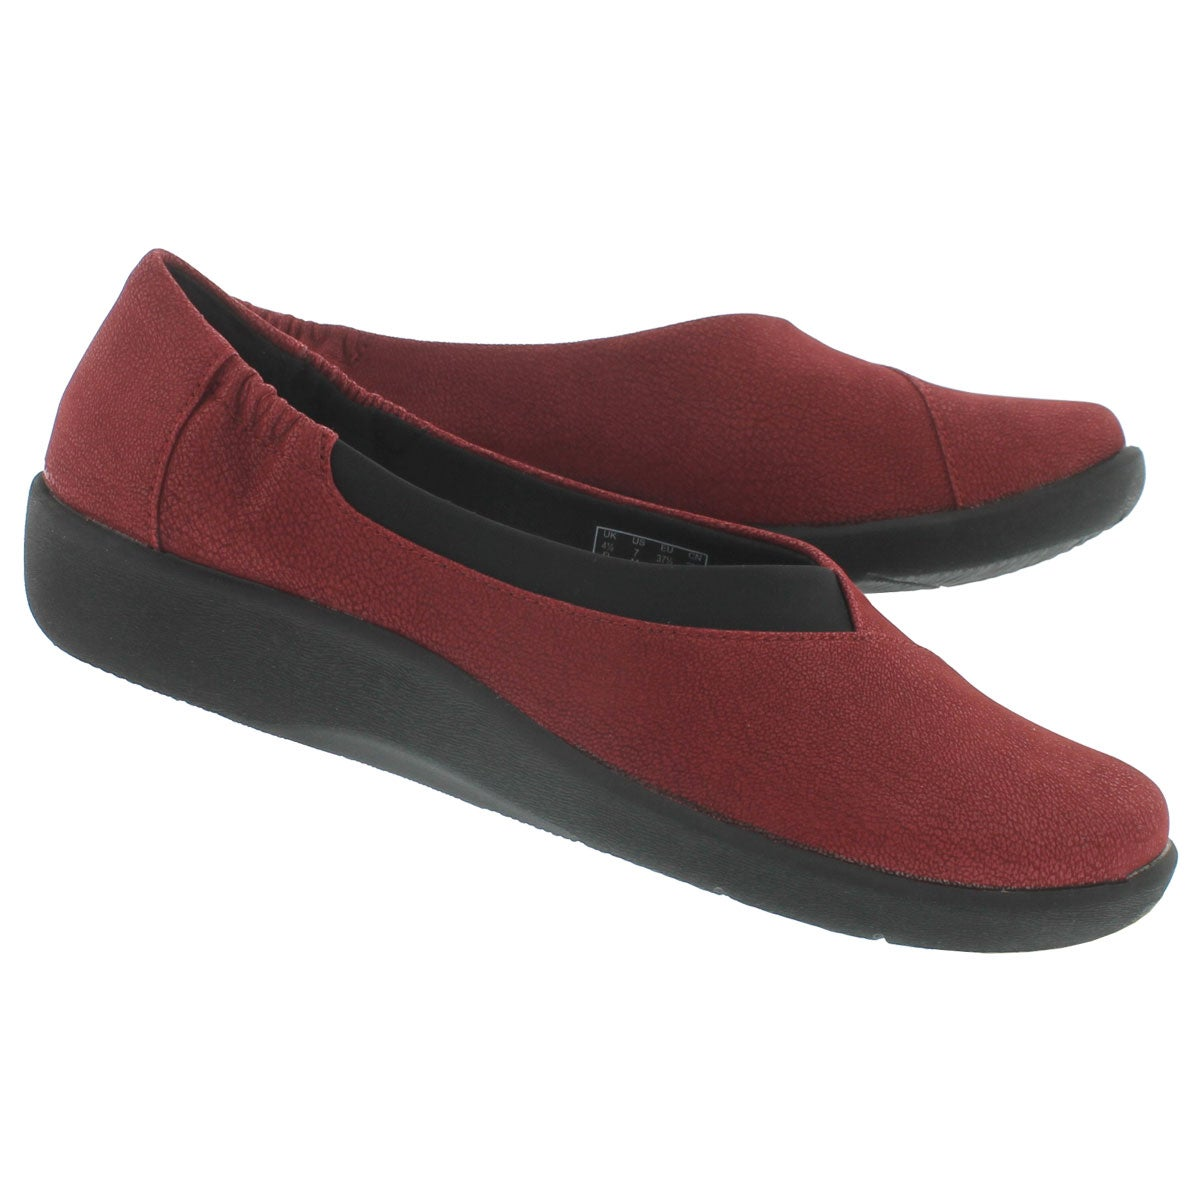 Lds Sillian Jetay cherry casual slip on